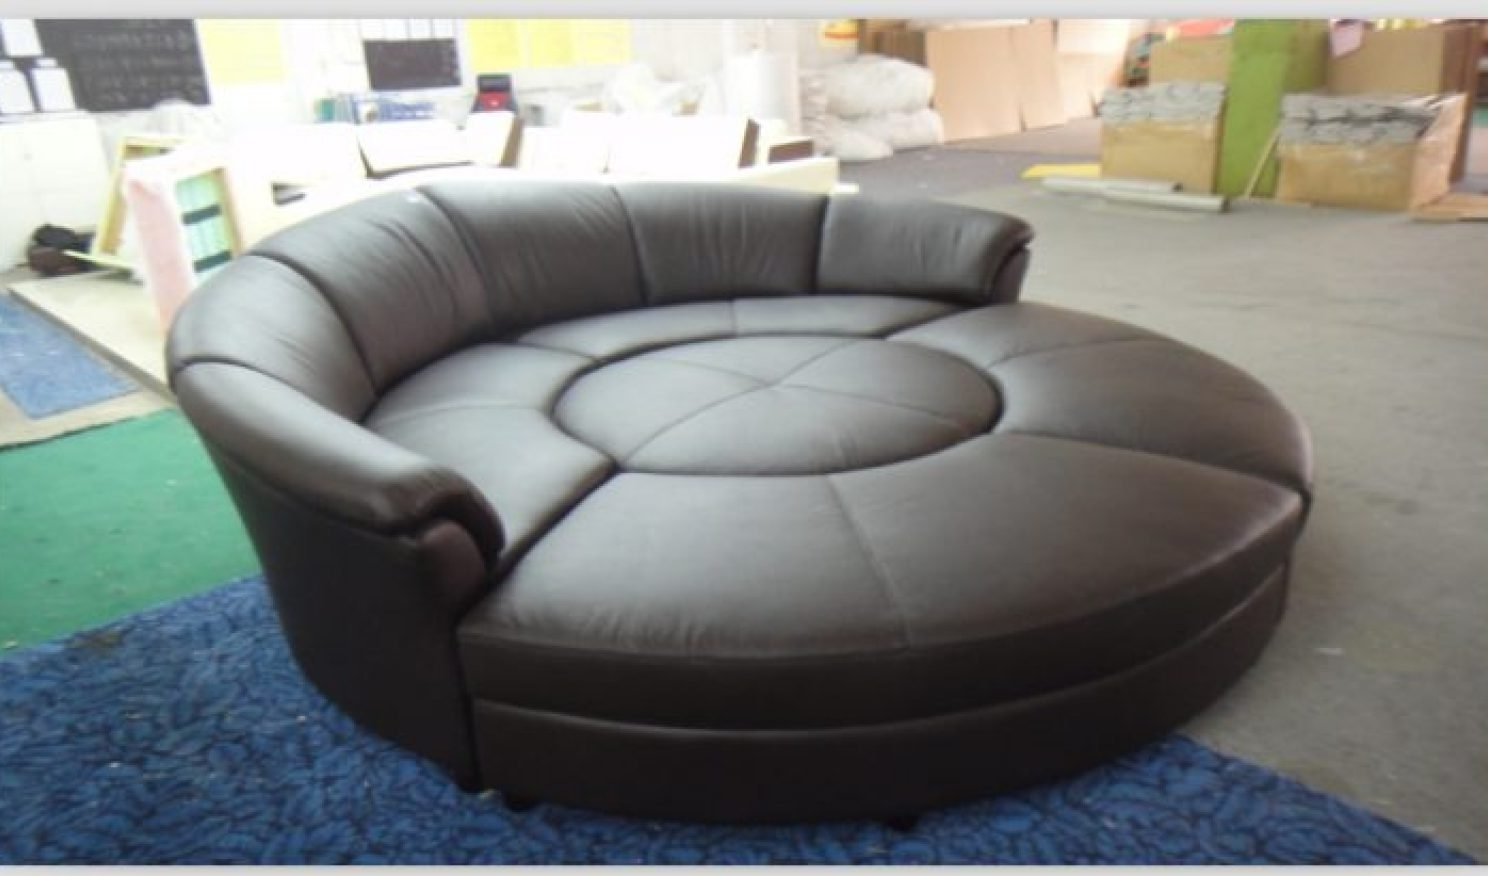 Sofa : Sofa Cute Big Chairs Stunning Circular Chair Explore Round With Favorite Circular Sofa Chairs (View 8 of 15)